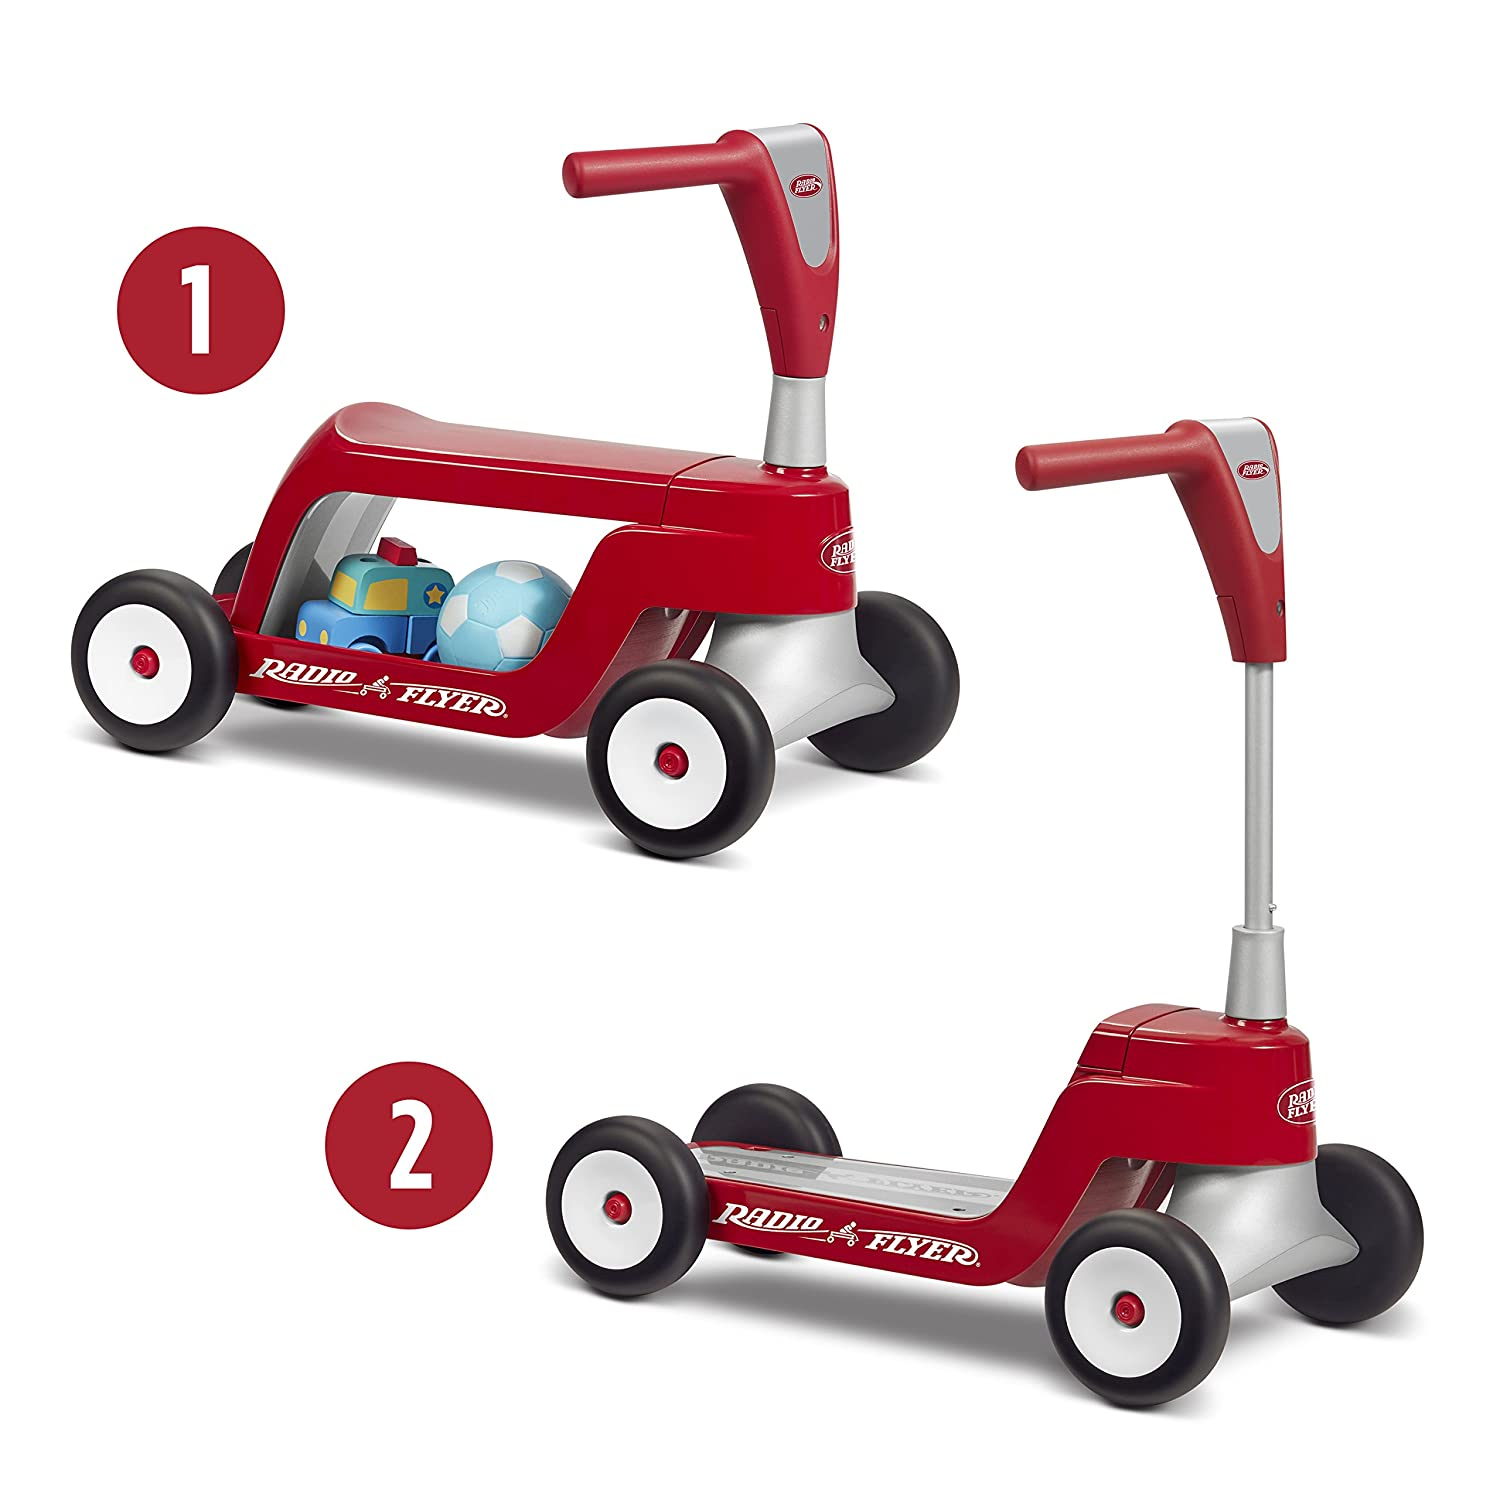 Top 15 Best Riding Toys for 1 Year Olds Reviews in 2020 4